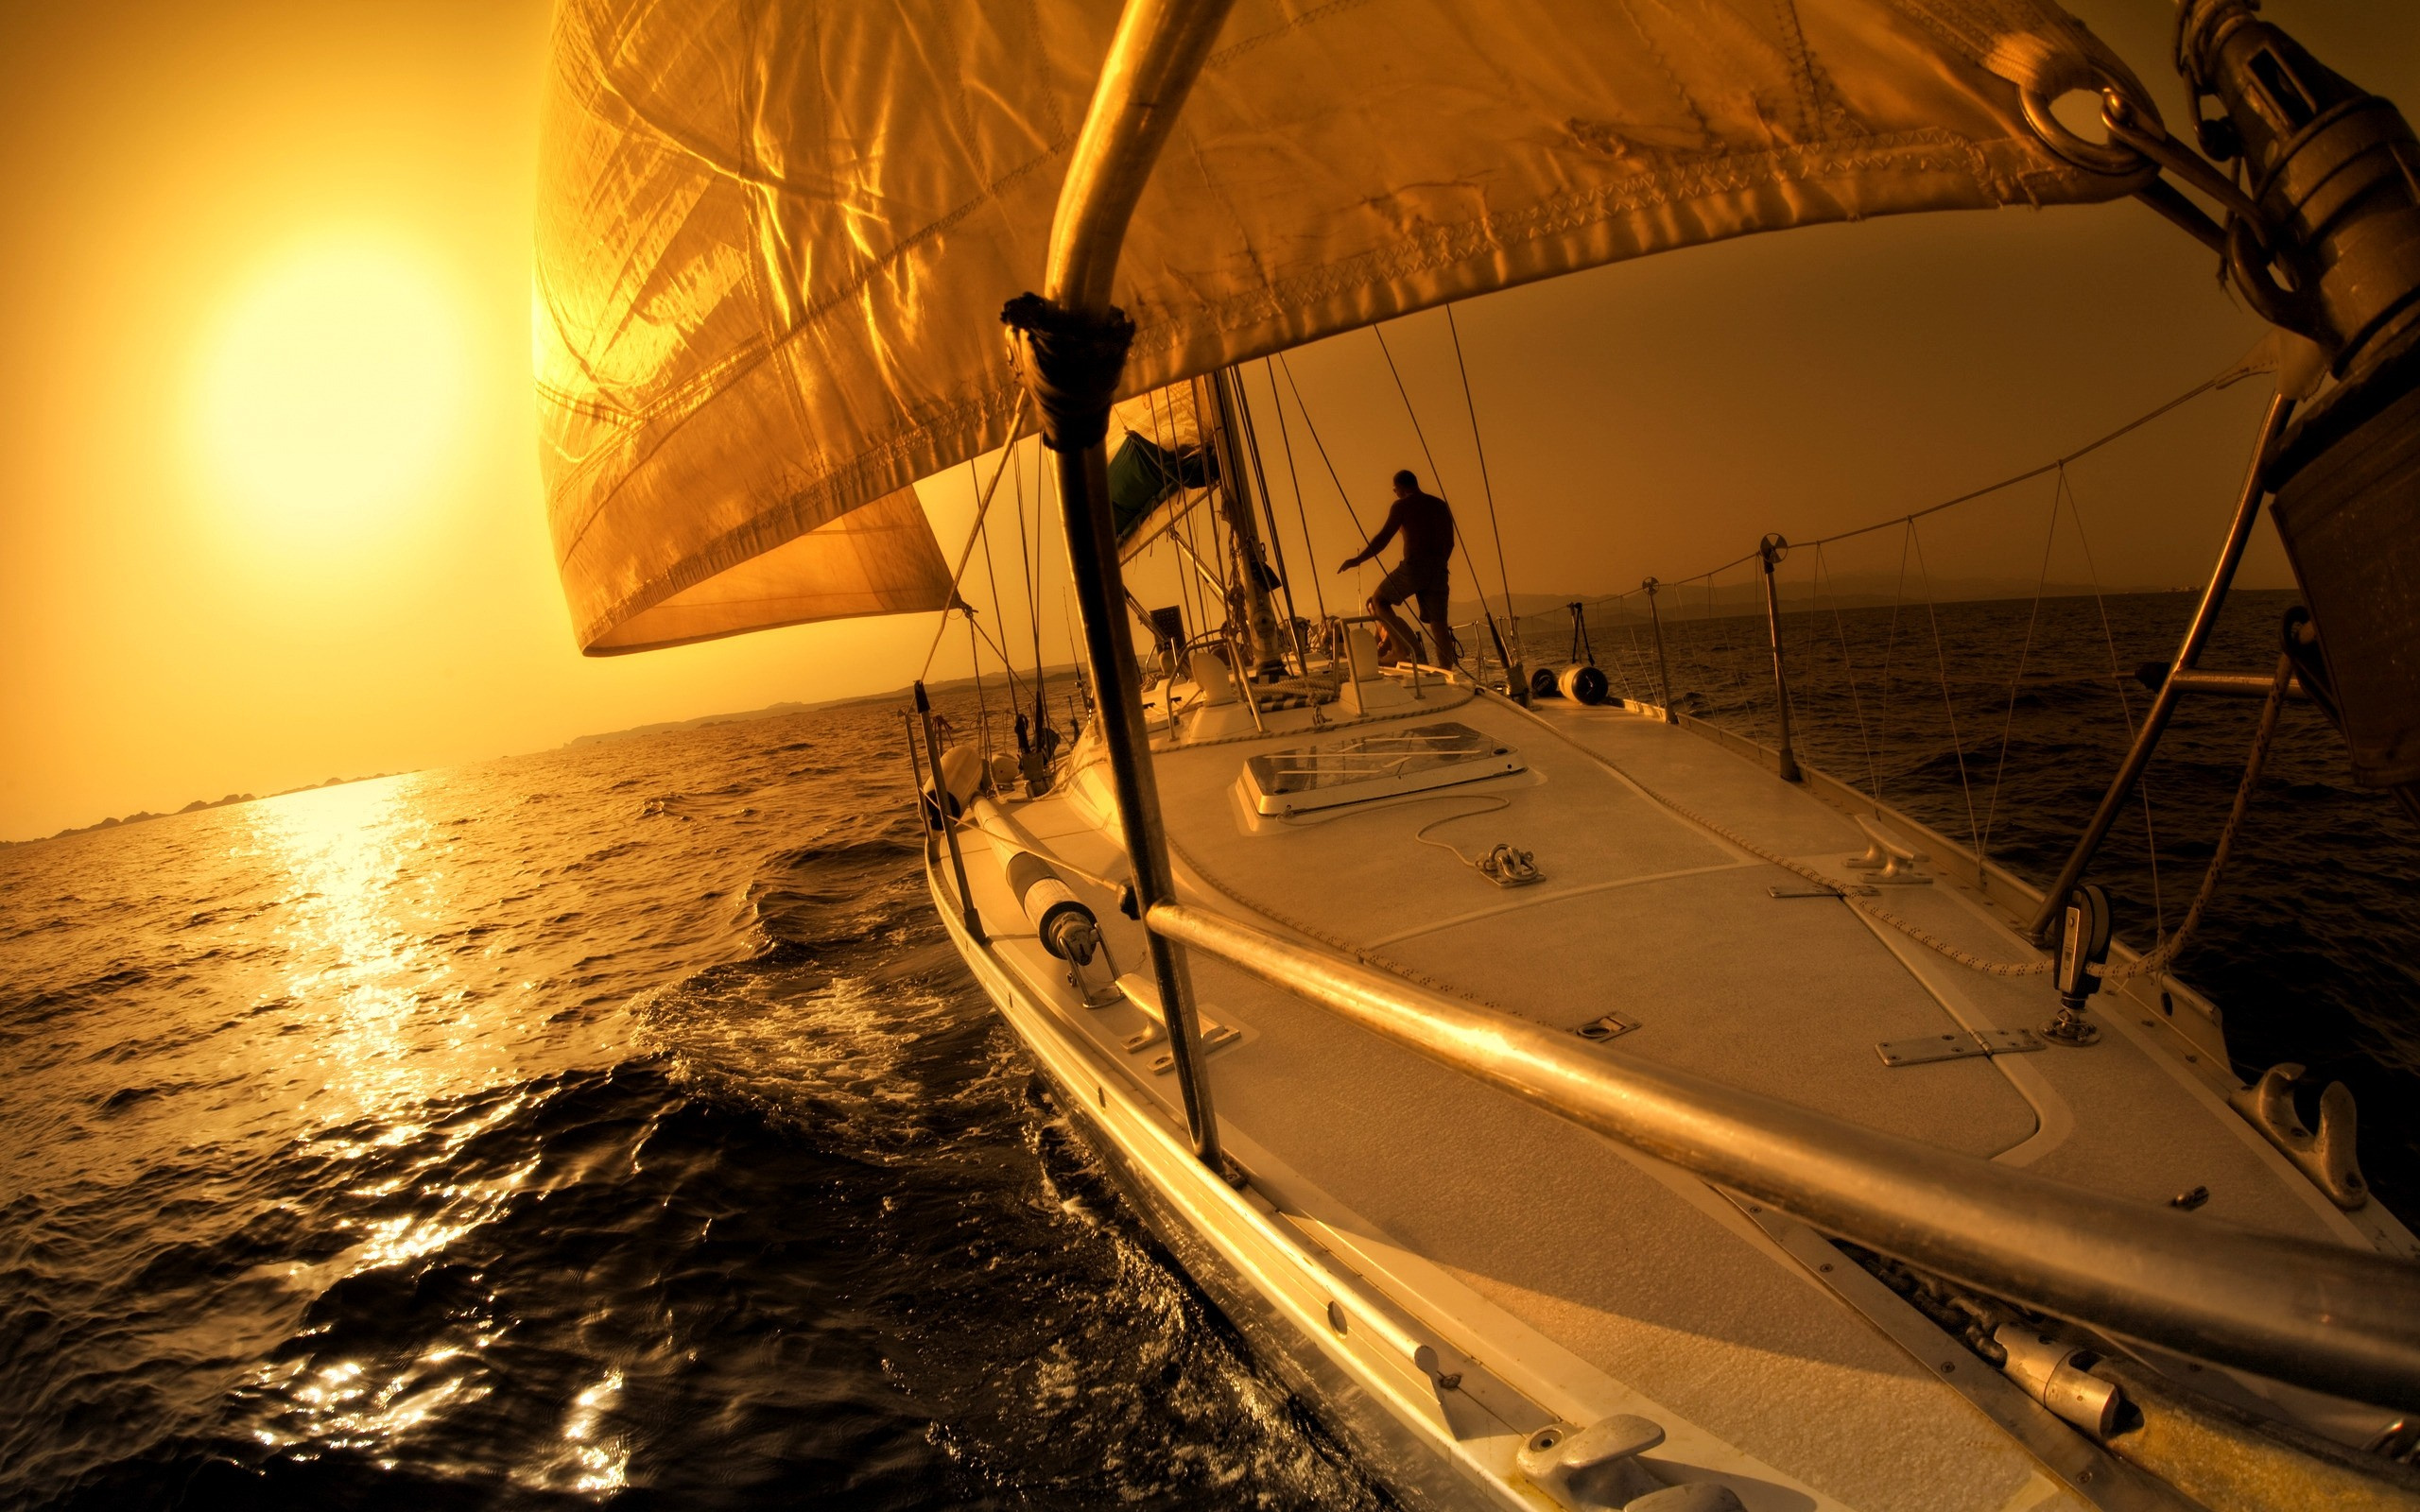 Full HD Backgrounds: Sailing, 2560x1600 px